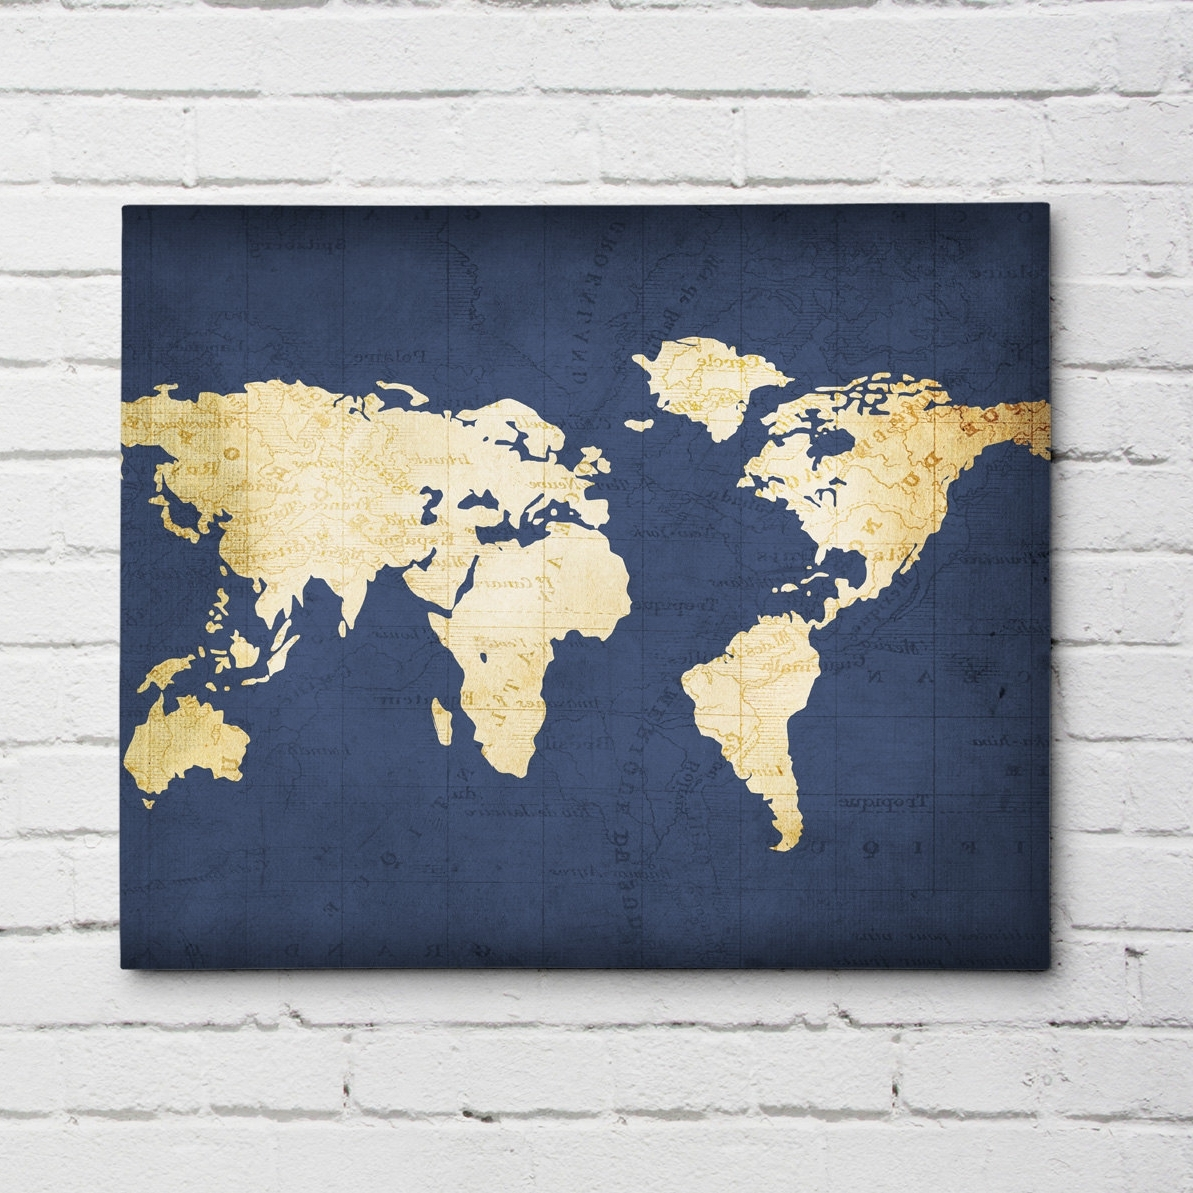 Navy Blue Wall Art Intended For Fashionable Navy Blue World Map (View 2 of 15)